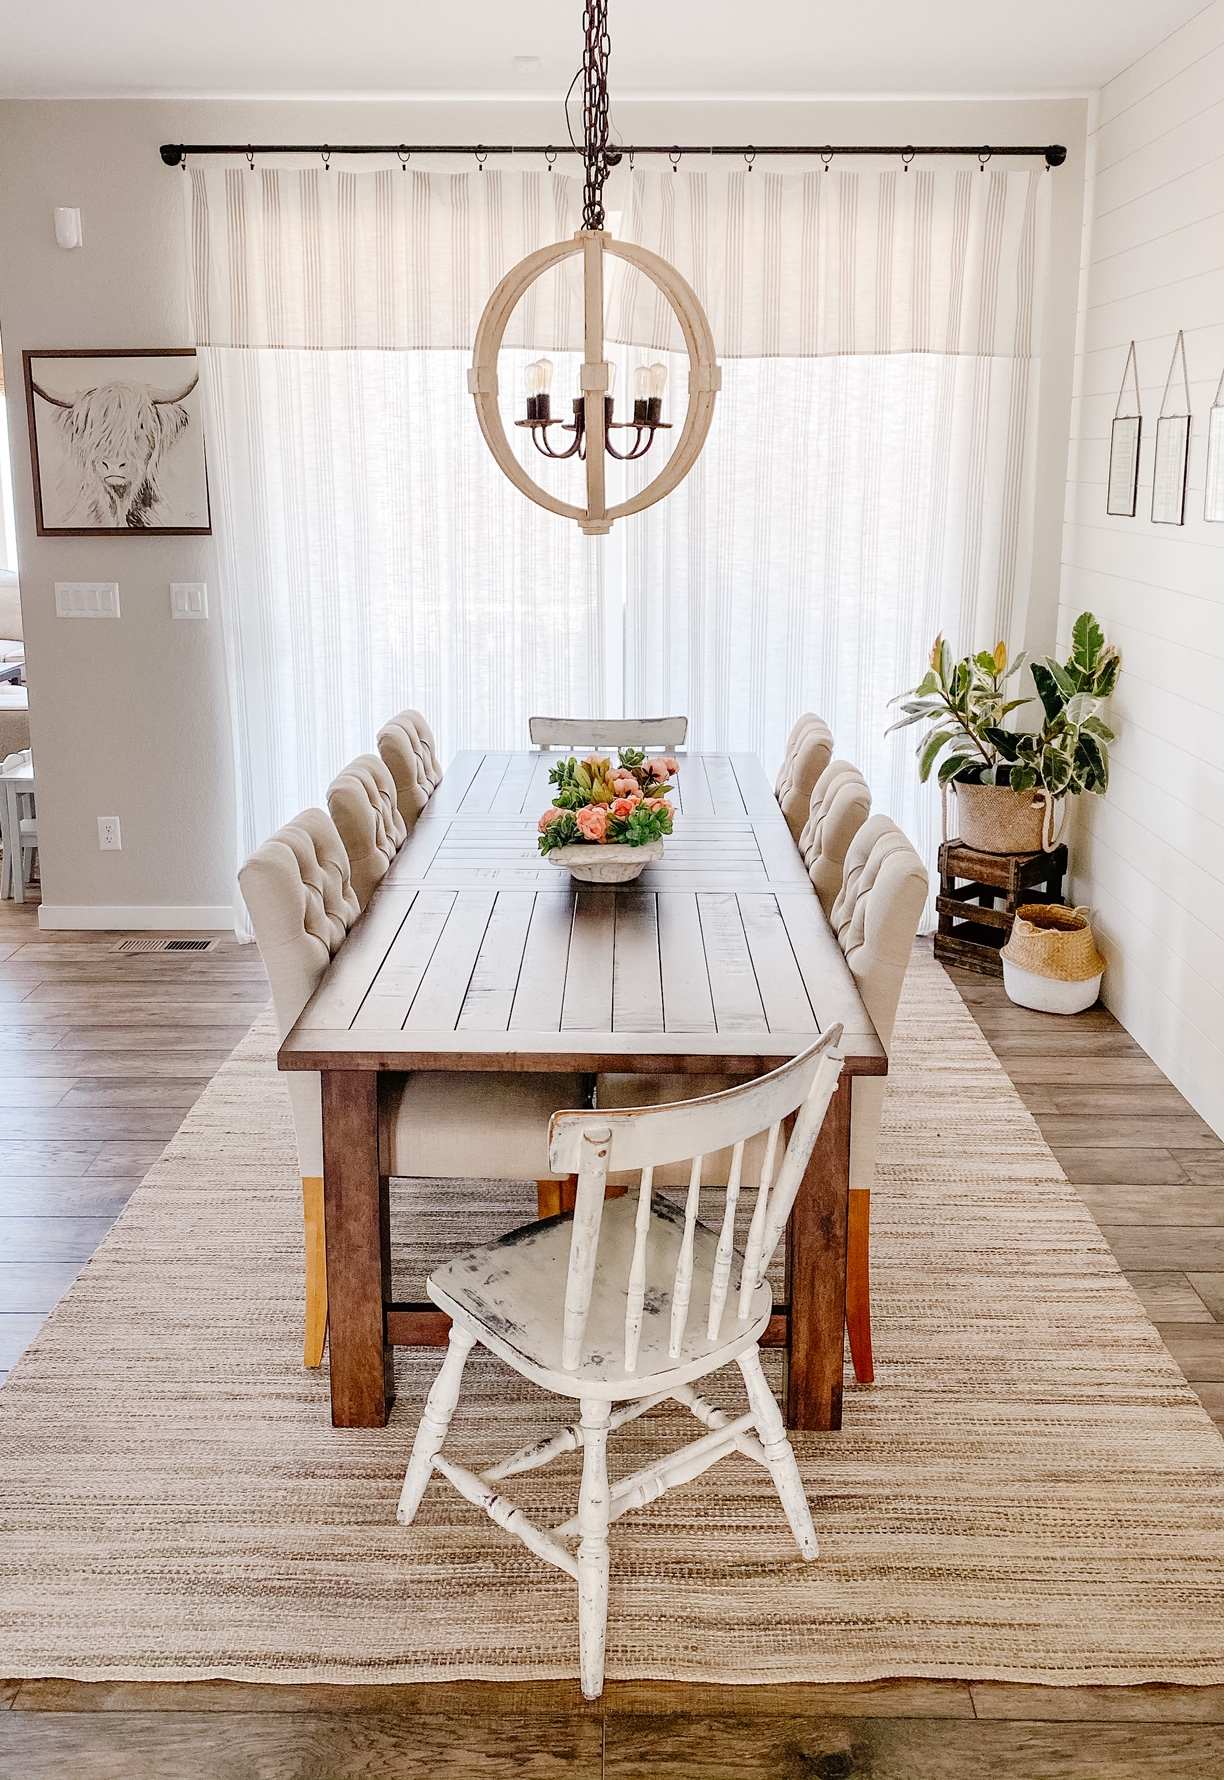 dining room decor with cheap curtains made from tablecloths